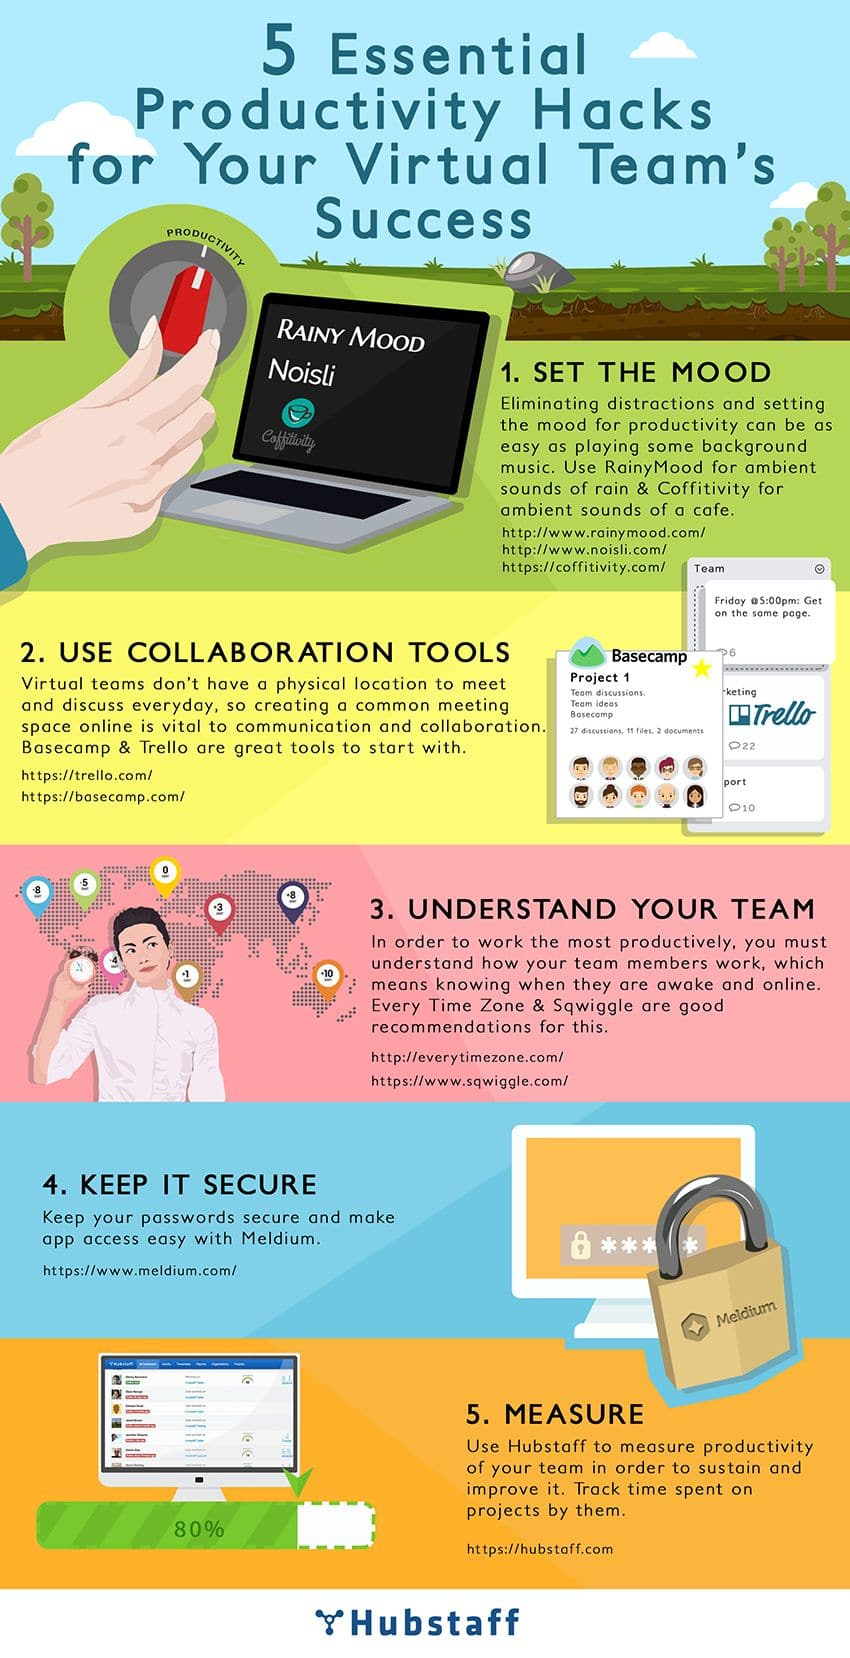 5 Productivity Tips for Your Virtual Teams' Success [Infographic]